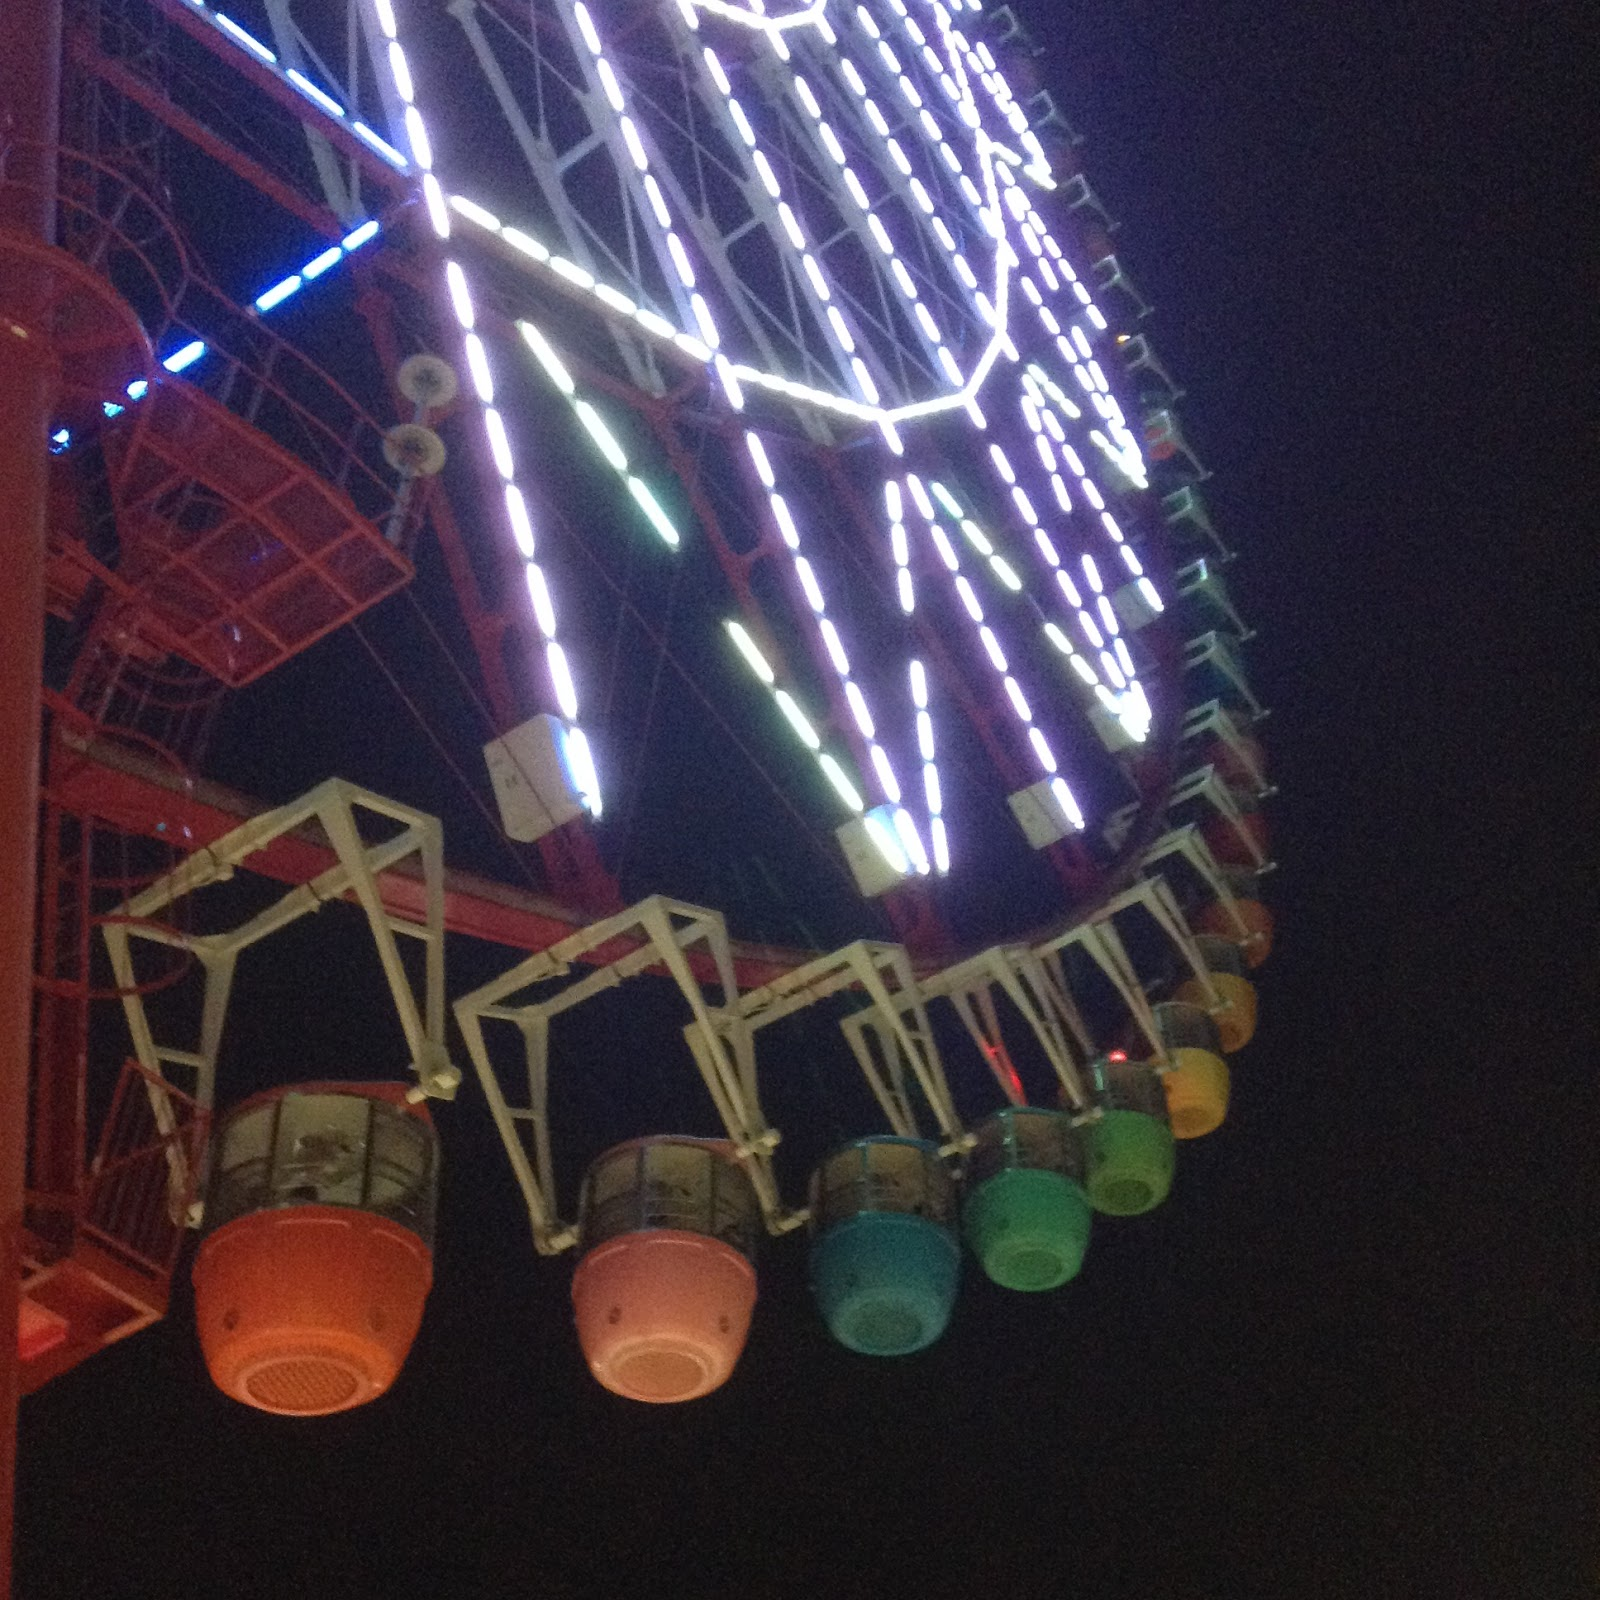 Odaiba Rainbow ferris wheel